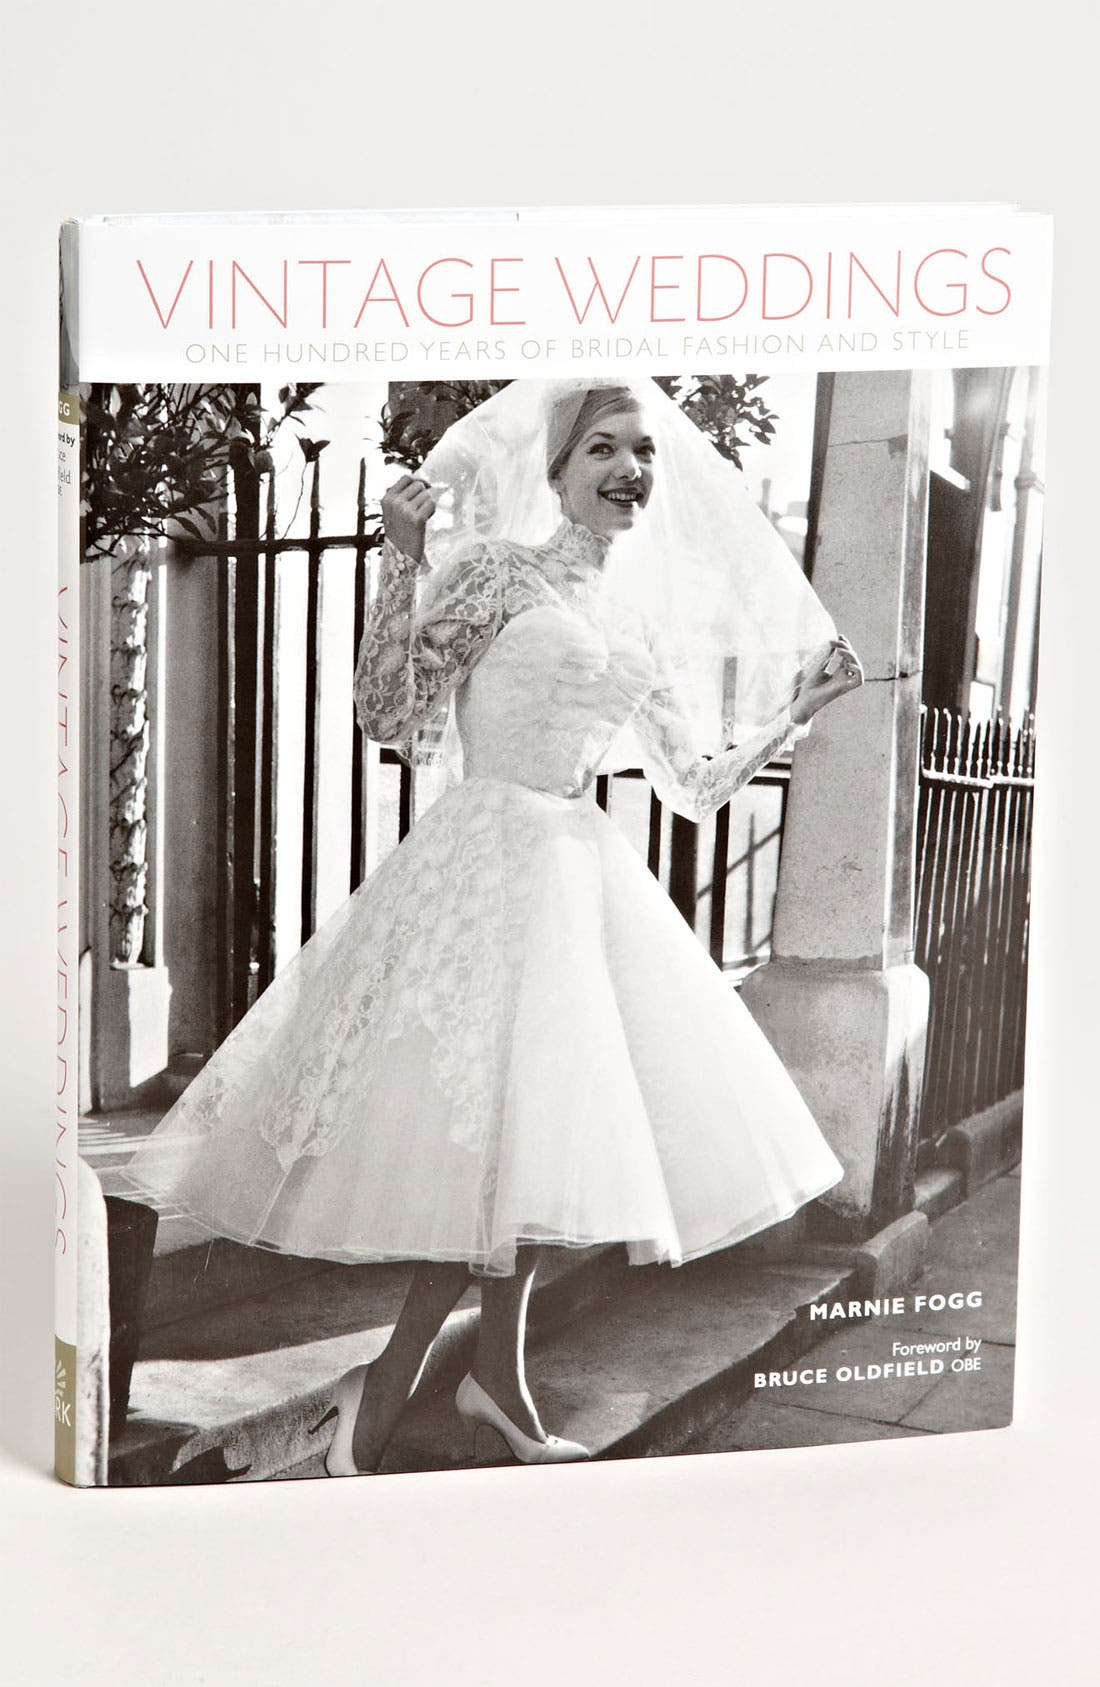 Alternate Image 1 Selected - 'Vintage Weddings: One Hundred Years of Bridal Fashion & Style' Book